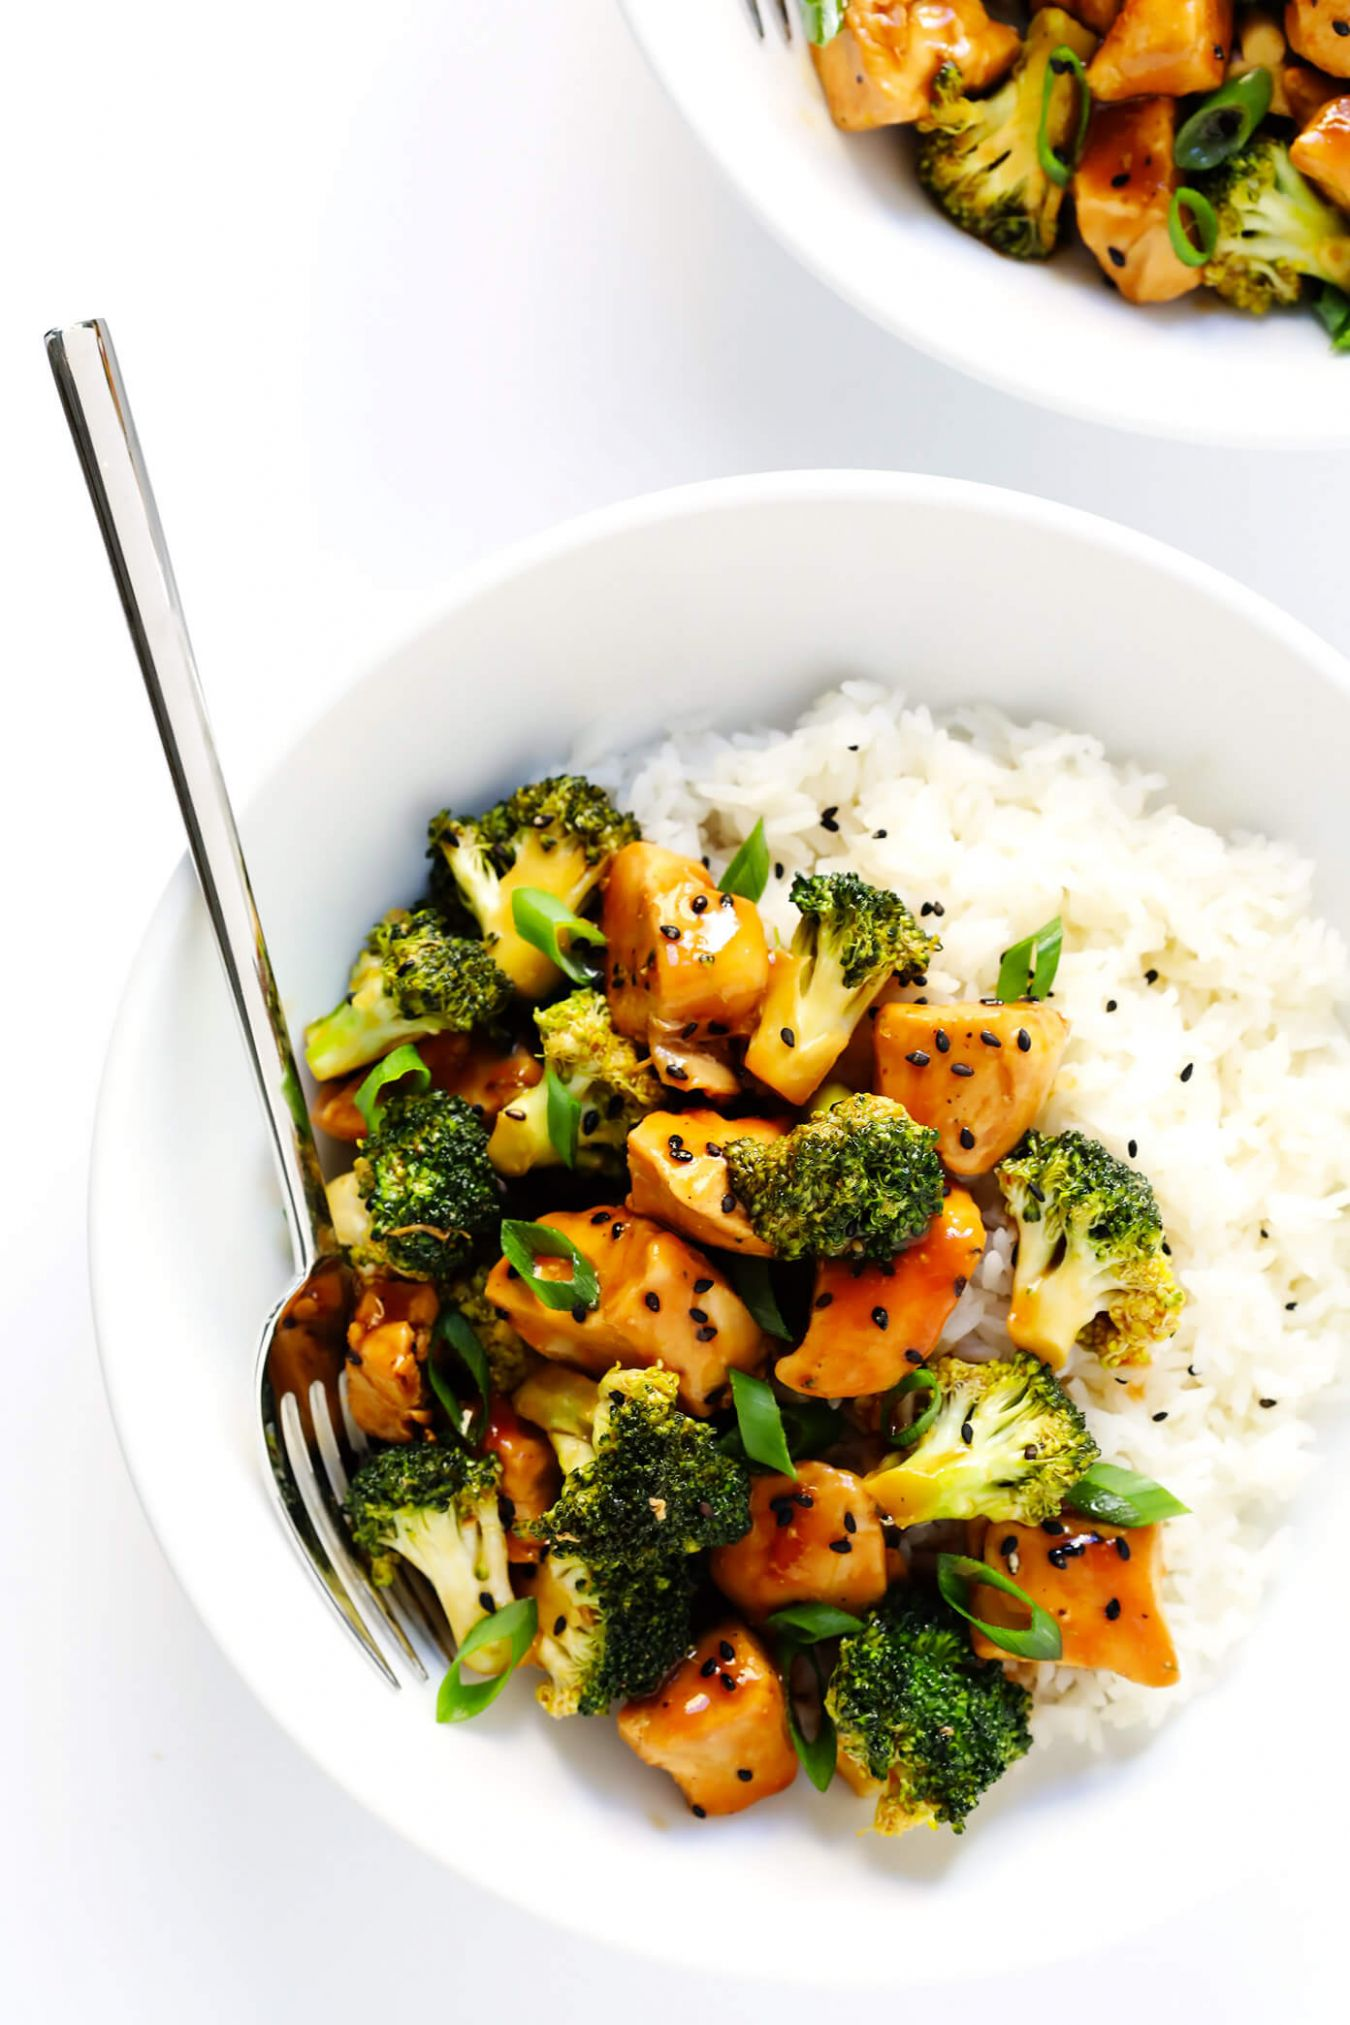 8-Minute Chicken and Broccoli - Recipes Chicken Broccoli